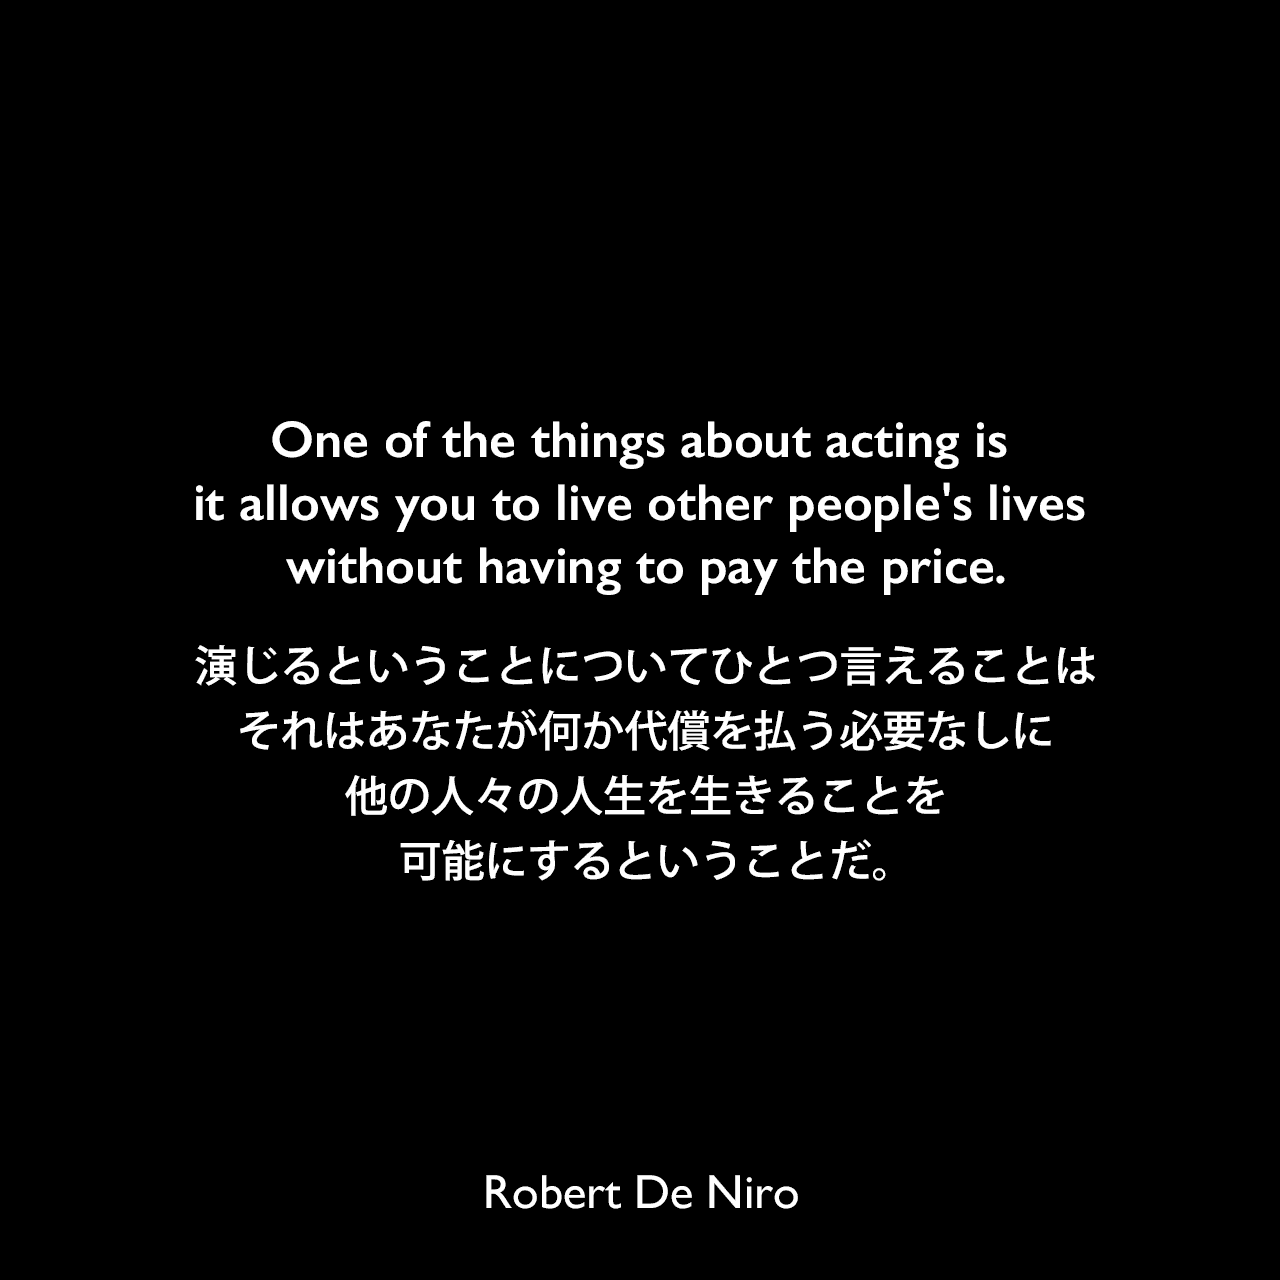 One of the things about acting is it allows you to live other people's lives without having to pay the price.演じるということについてひとつ言えることは、それはあなたが何か代償を払う必要なしに他の人々の人生を生きることを可能にするということだ。Robert De Niro